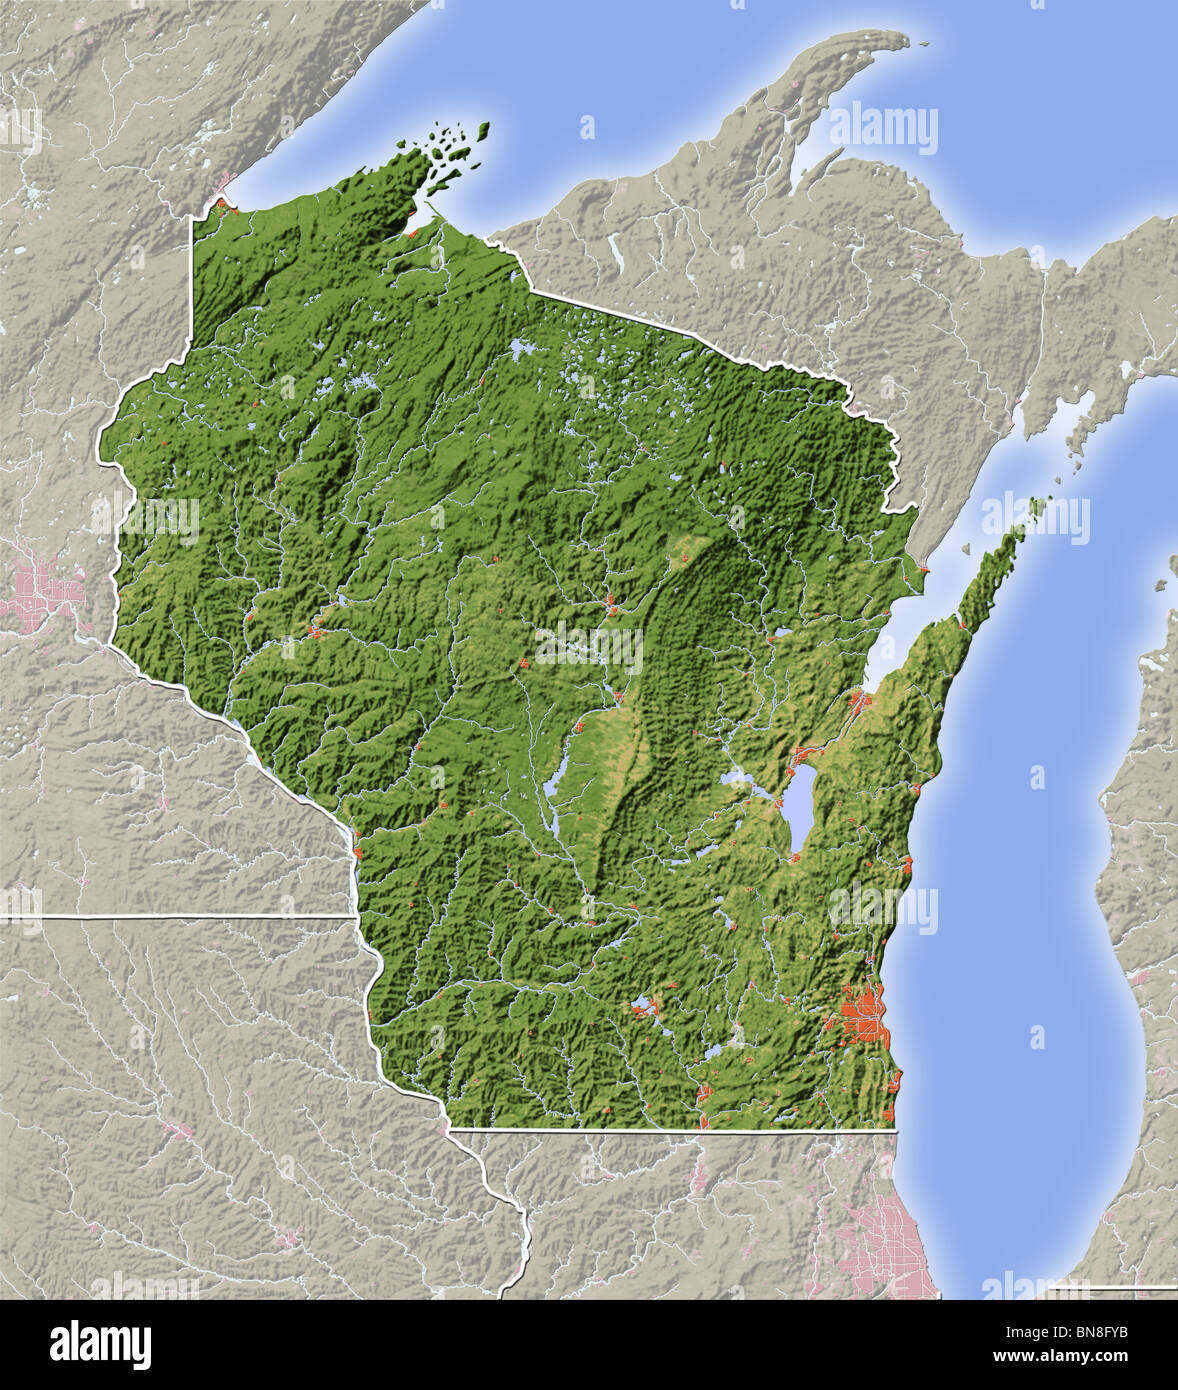 Map Of Wisconsin Stock Photos & Map Of Wisconsin Stock Images - Alamy